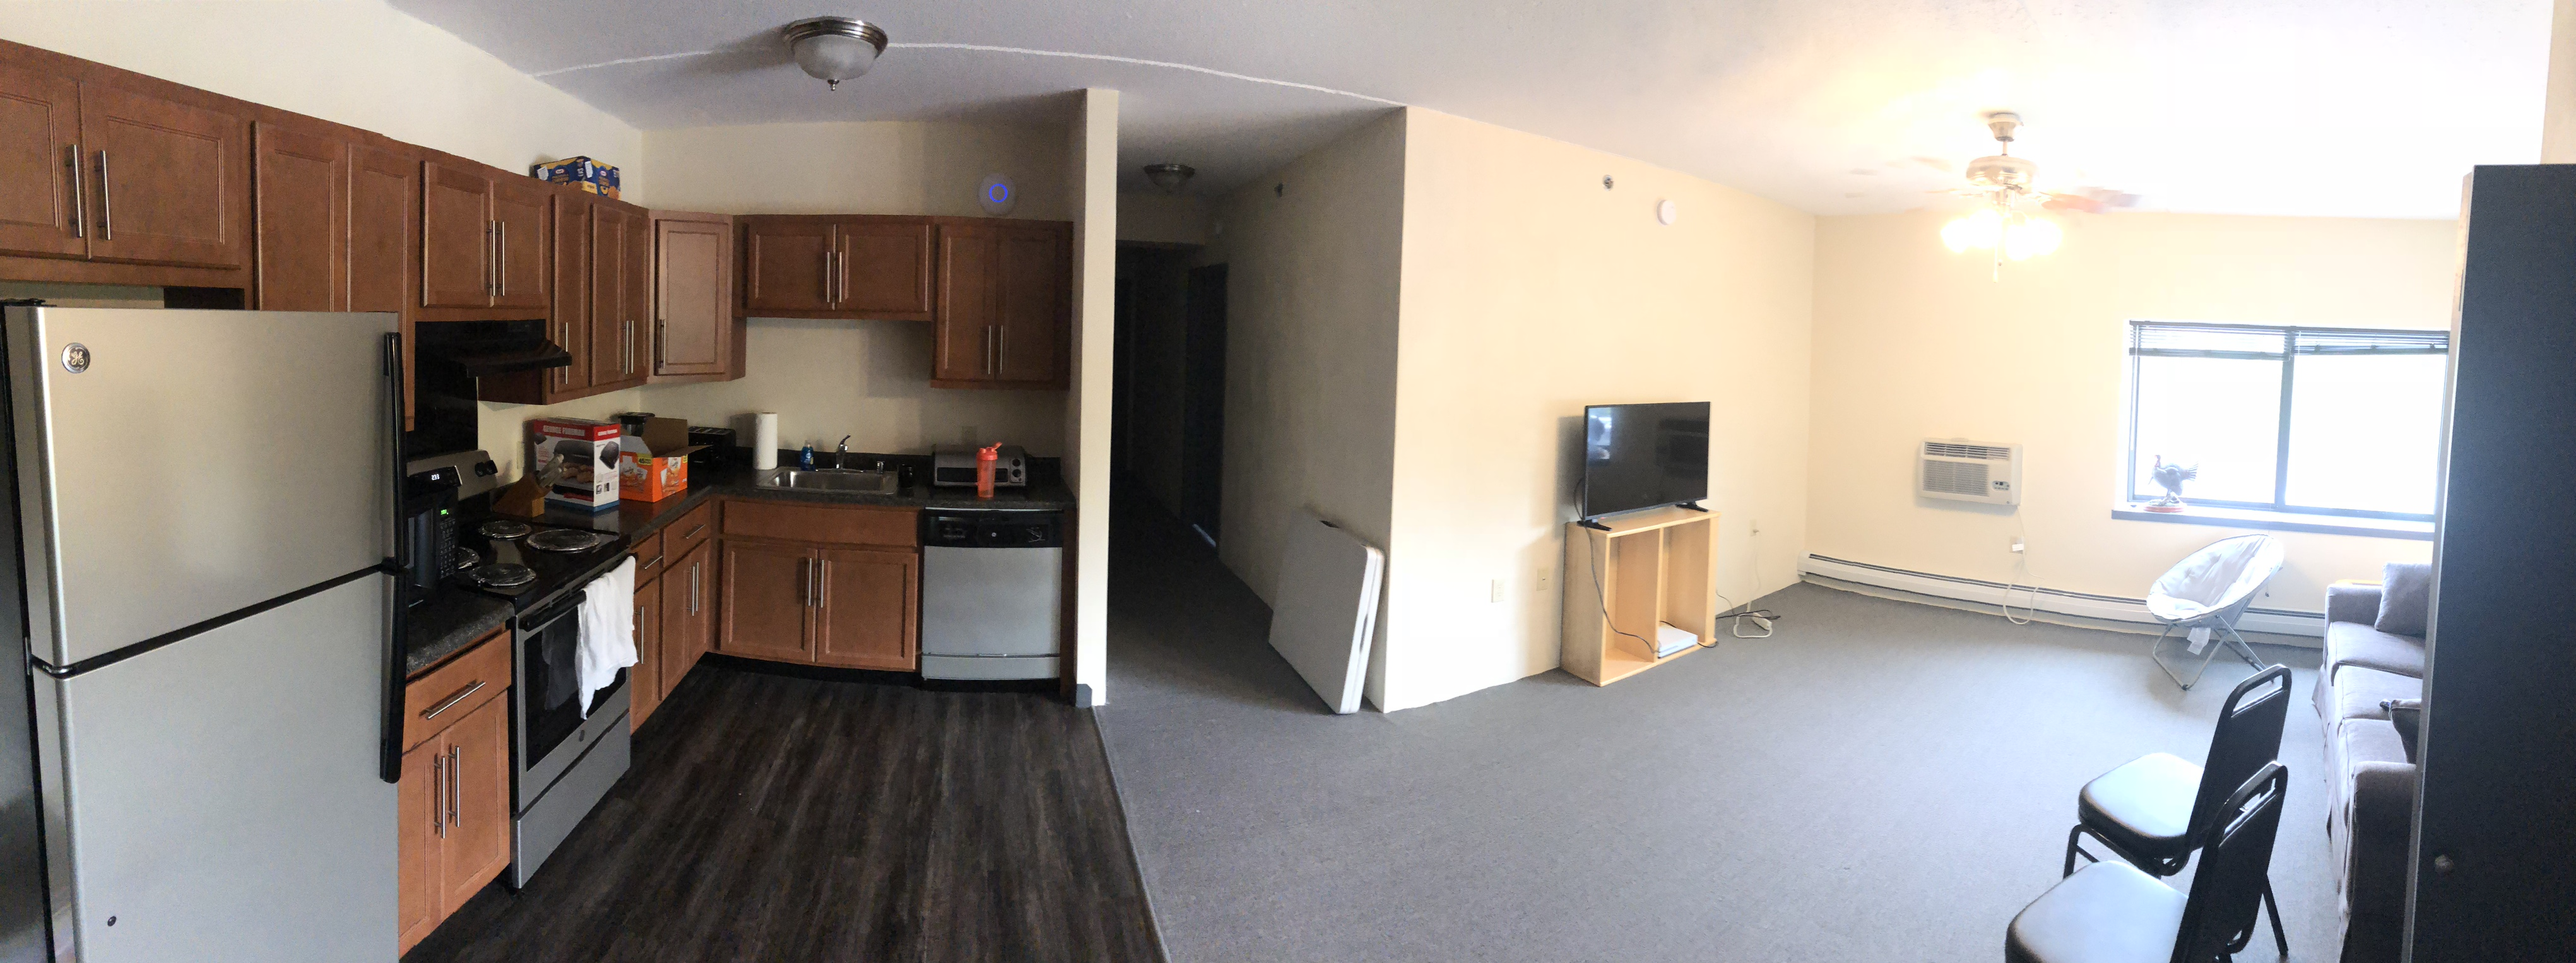 sublease near uw-whitewater